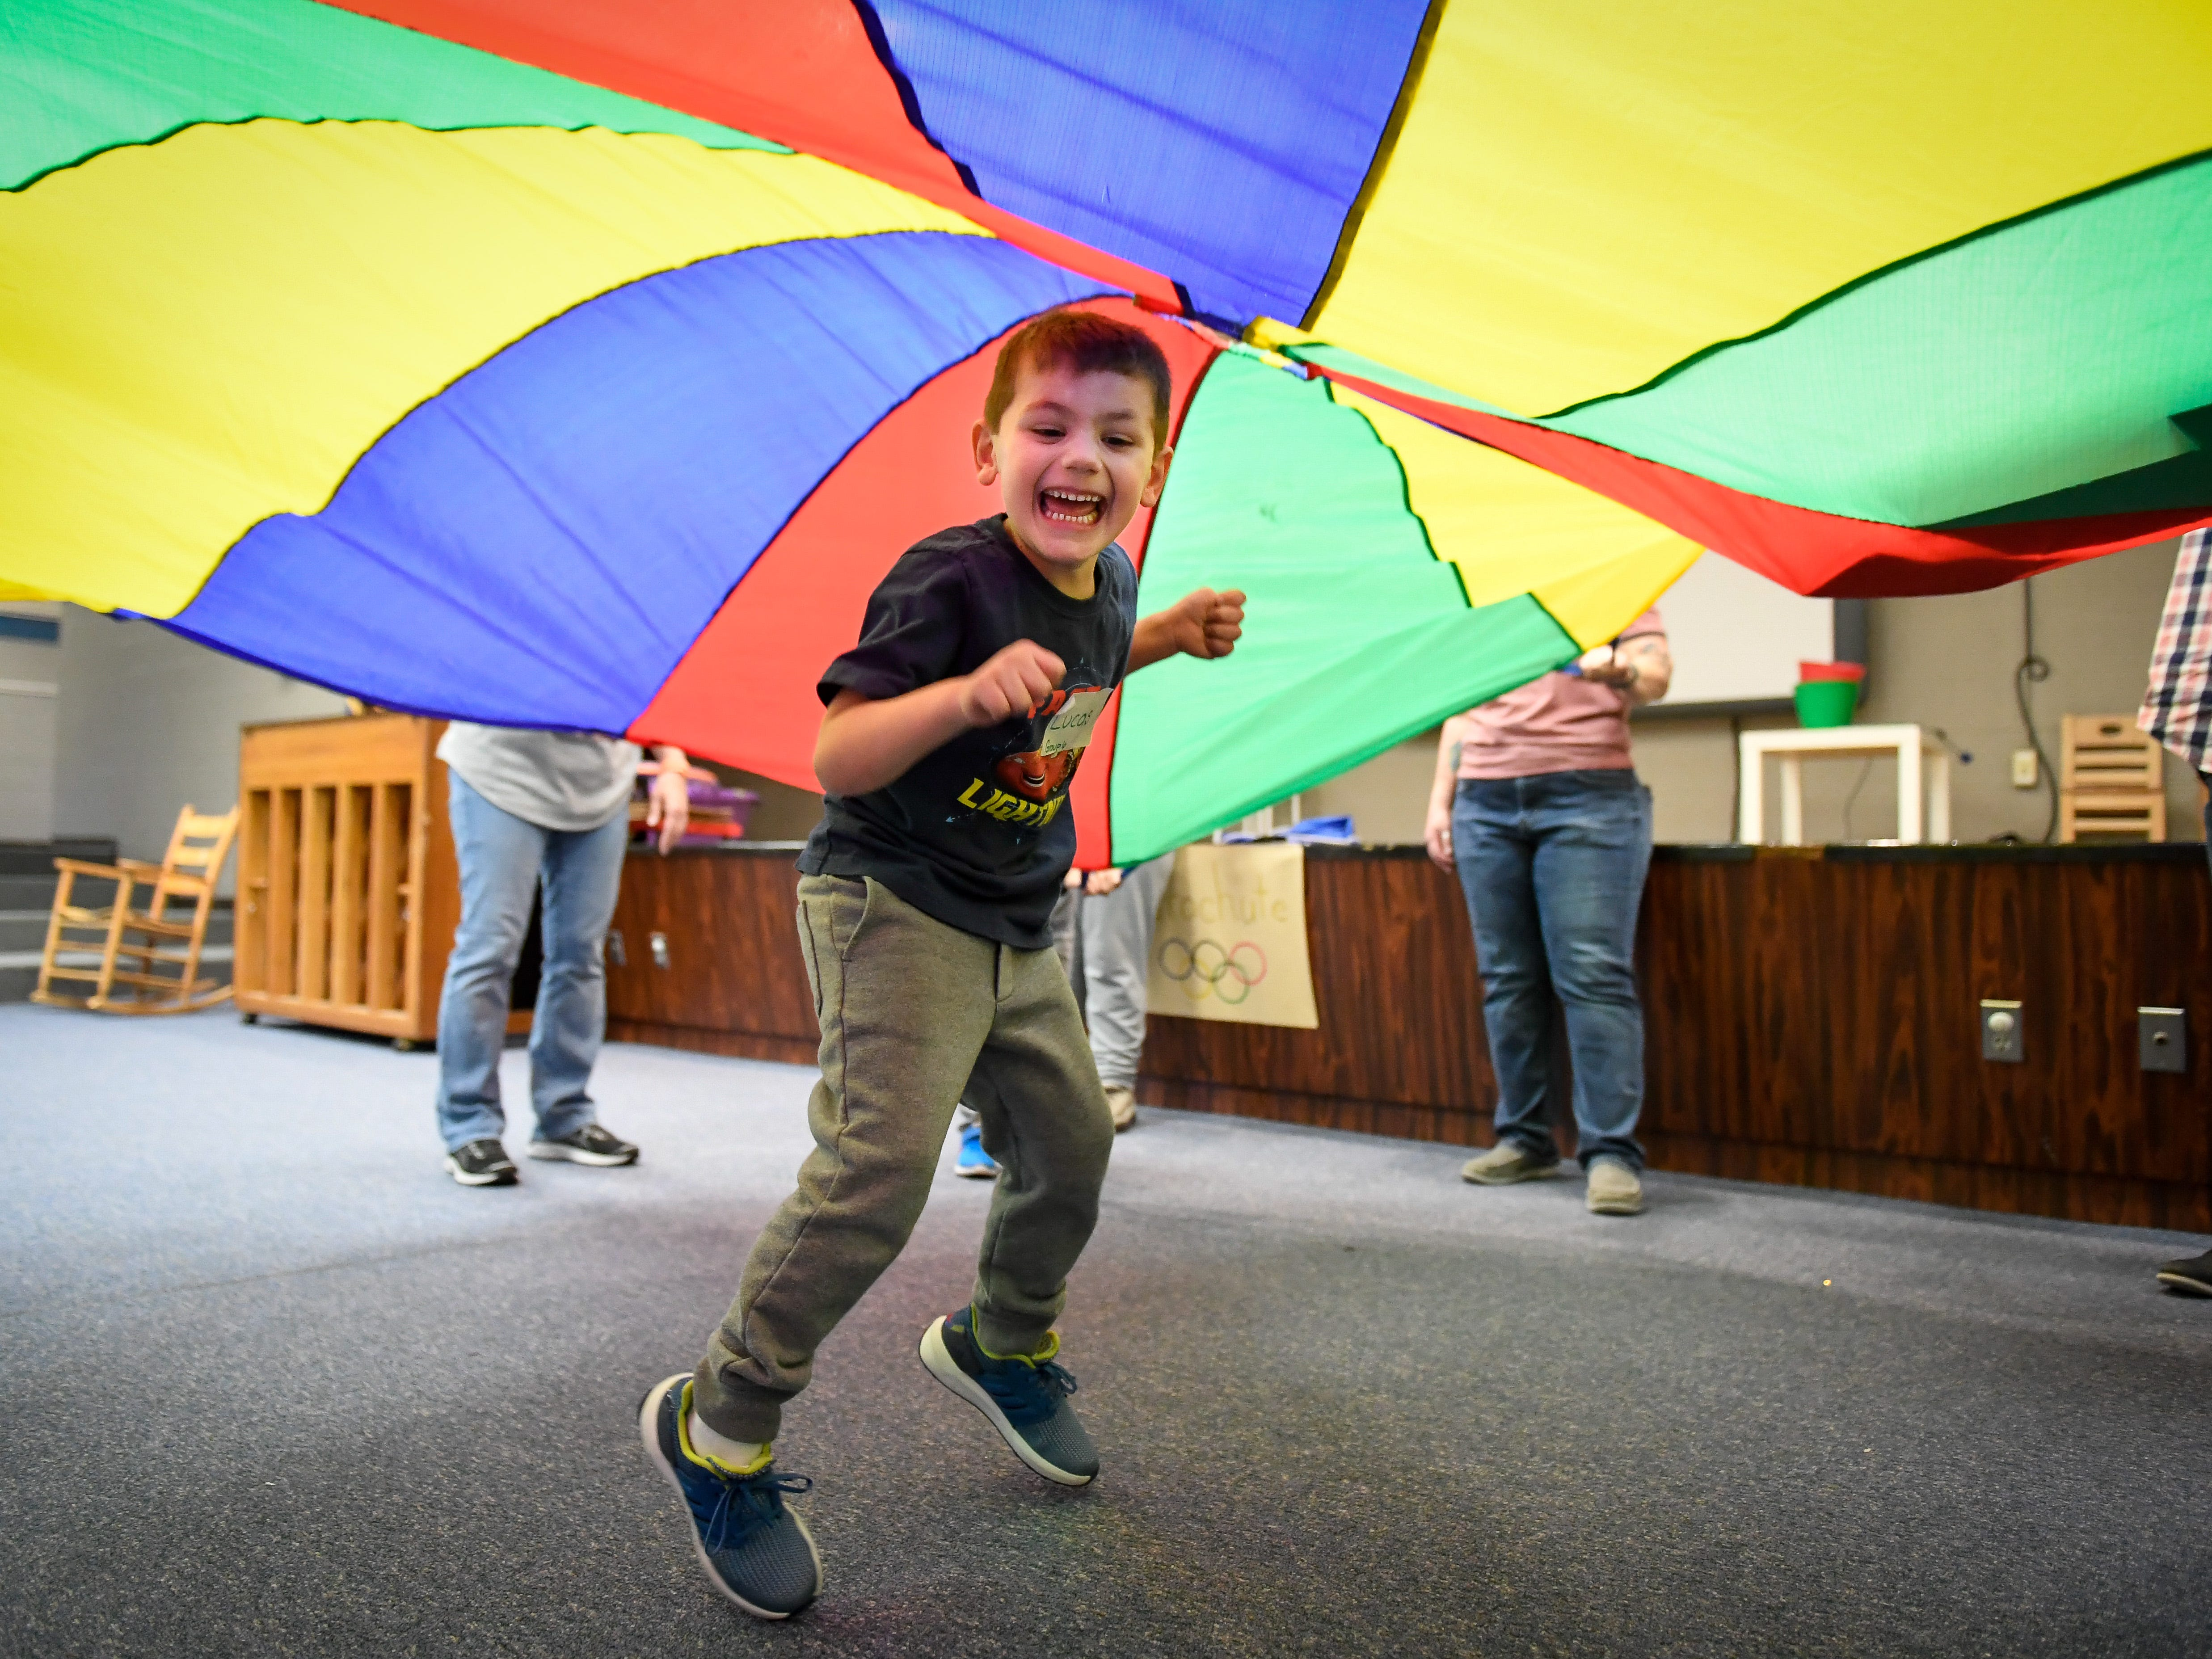 Taking his turn, Lucas Spanner, 9 years-old, plays under a parachute during the Special Olympics Unified Champion School Young Athlete program at Culver Early Learning Center Friday, March 22, 2019.